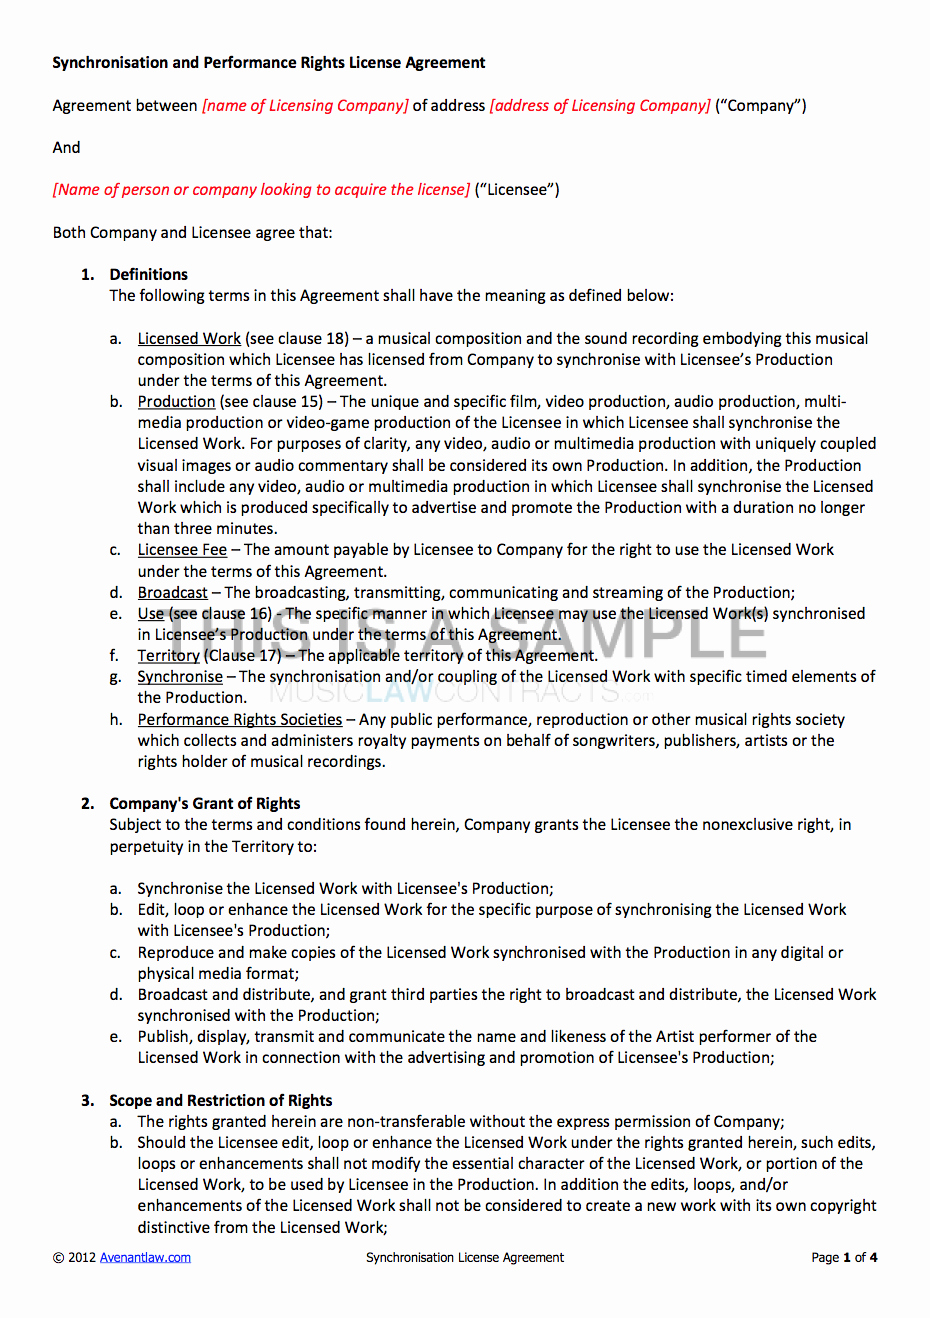 Product Licensing Agreement Template Fresh Synchronisation License Contract Template